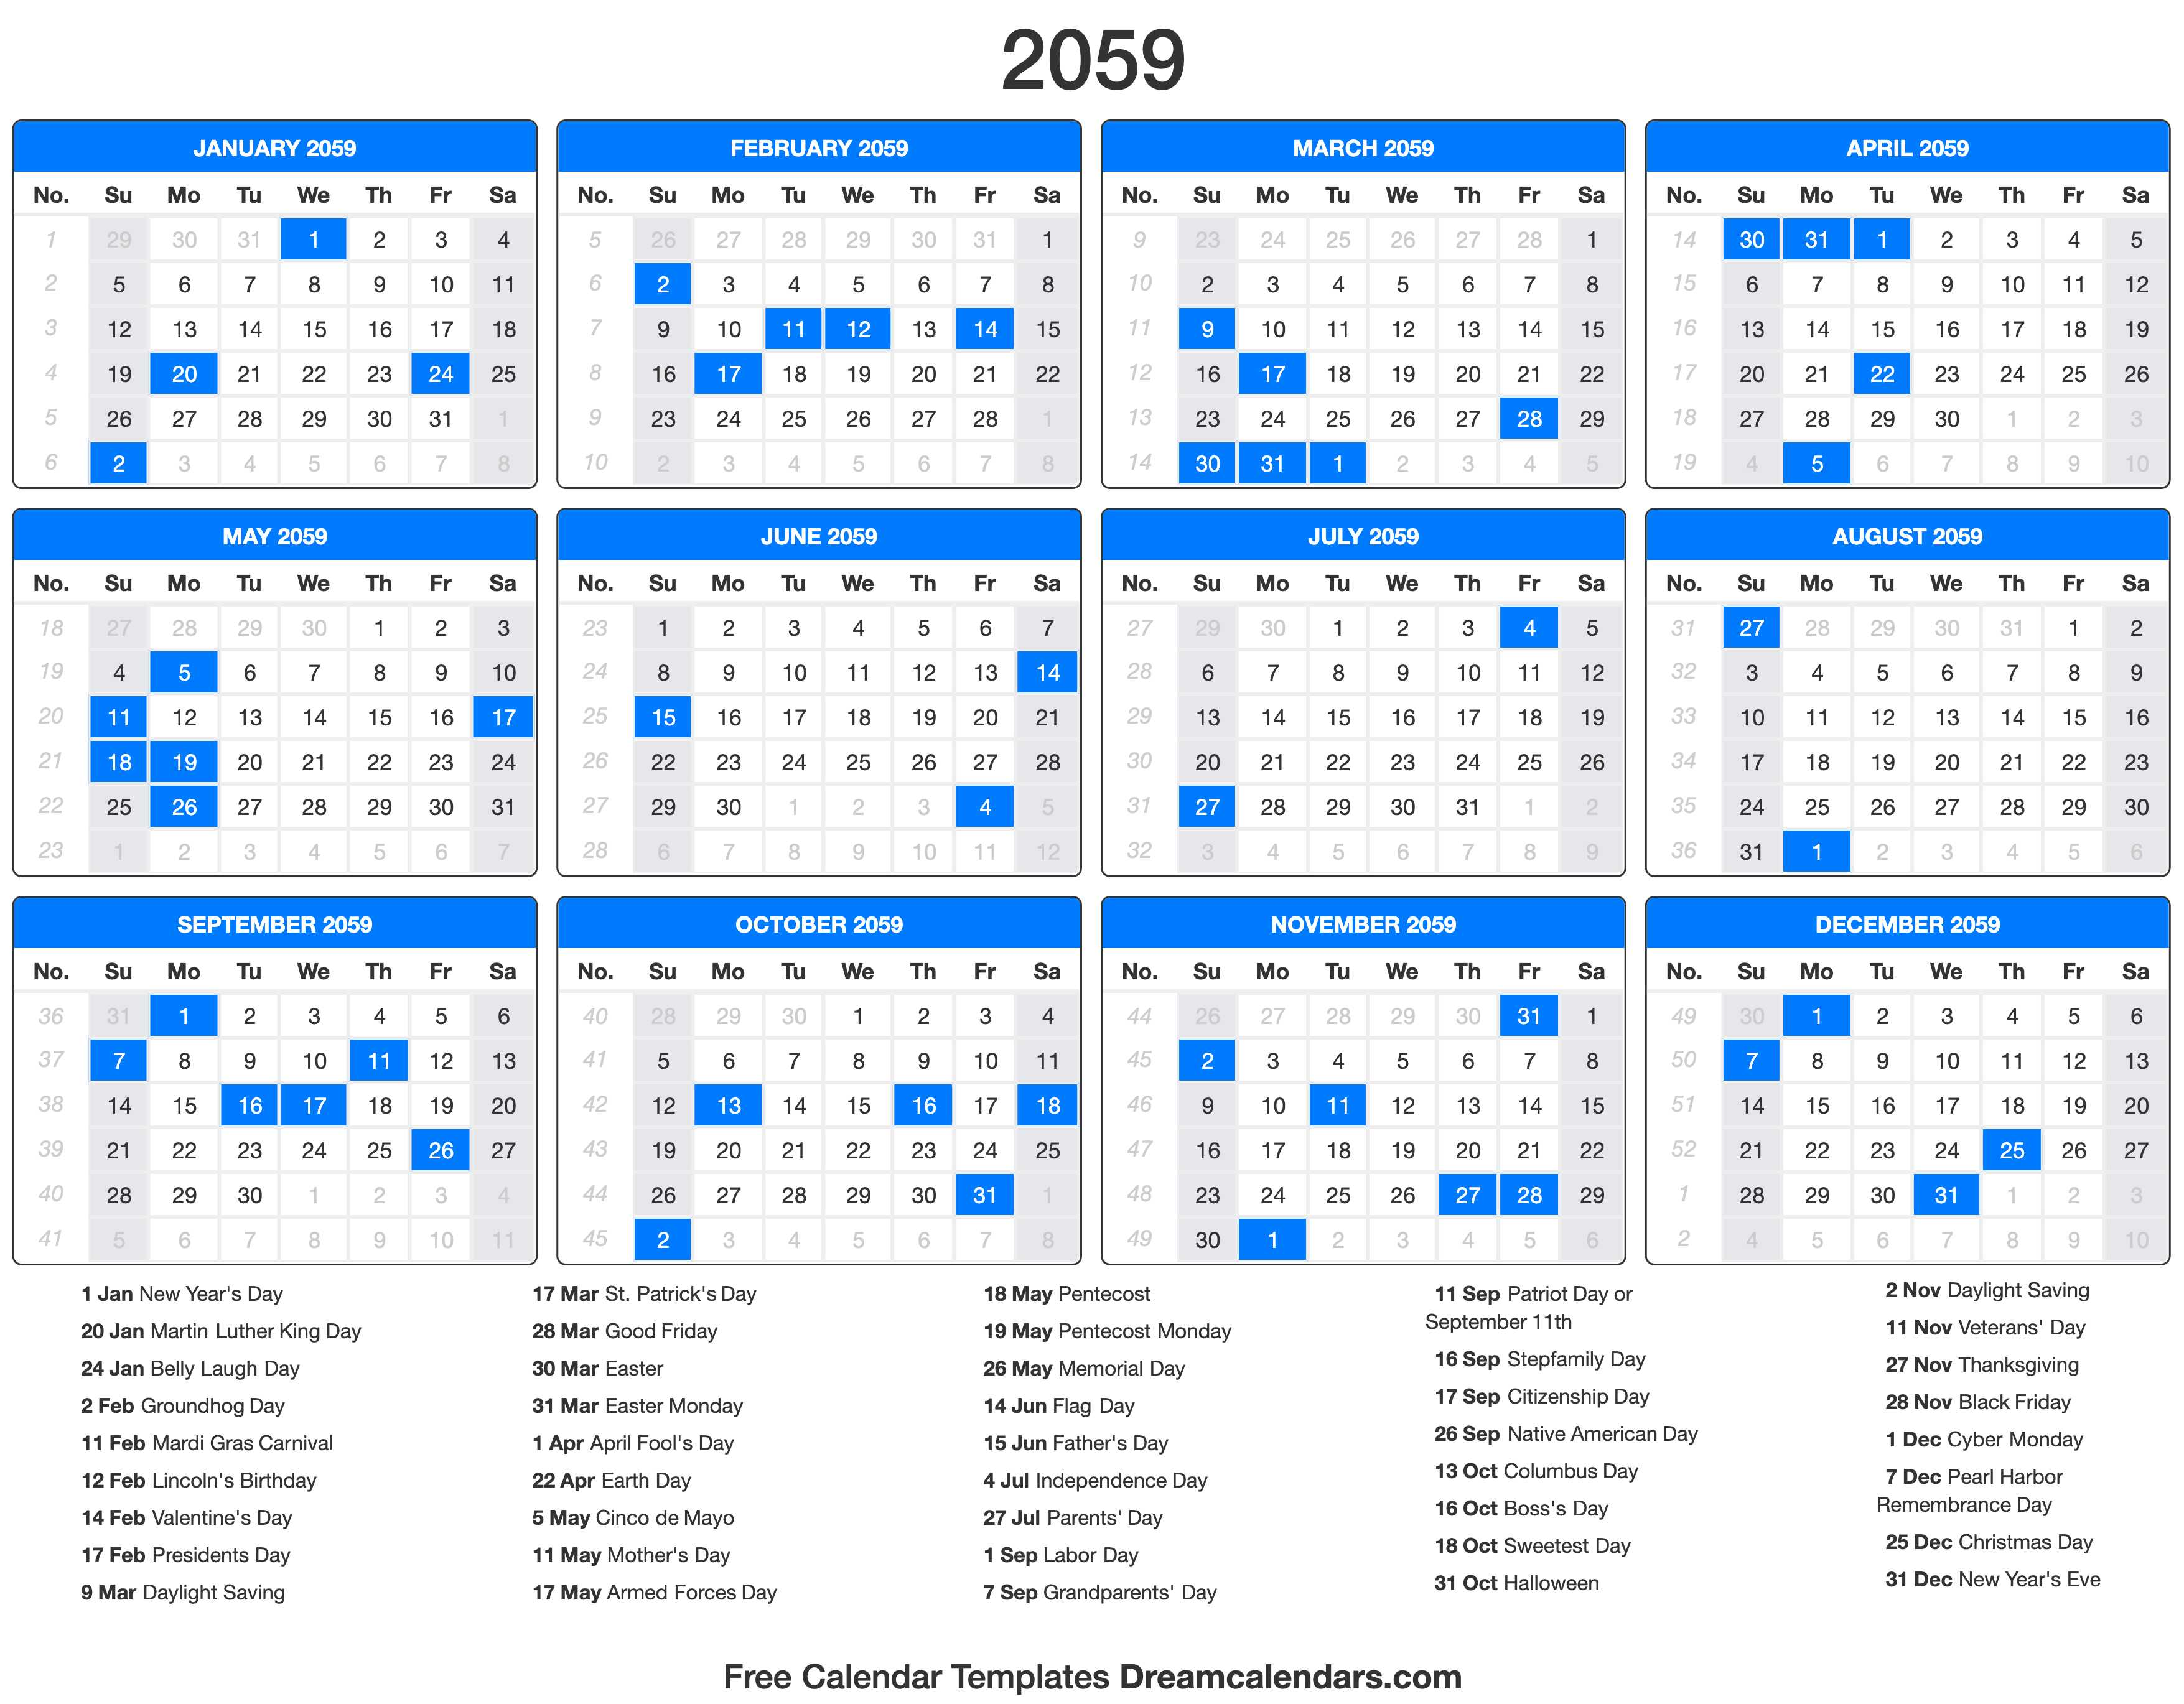 2059 Calendar with holidays